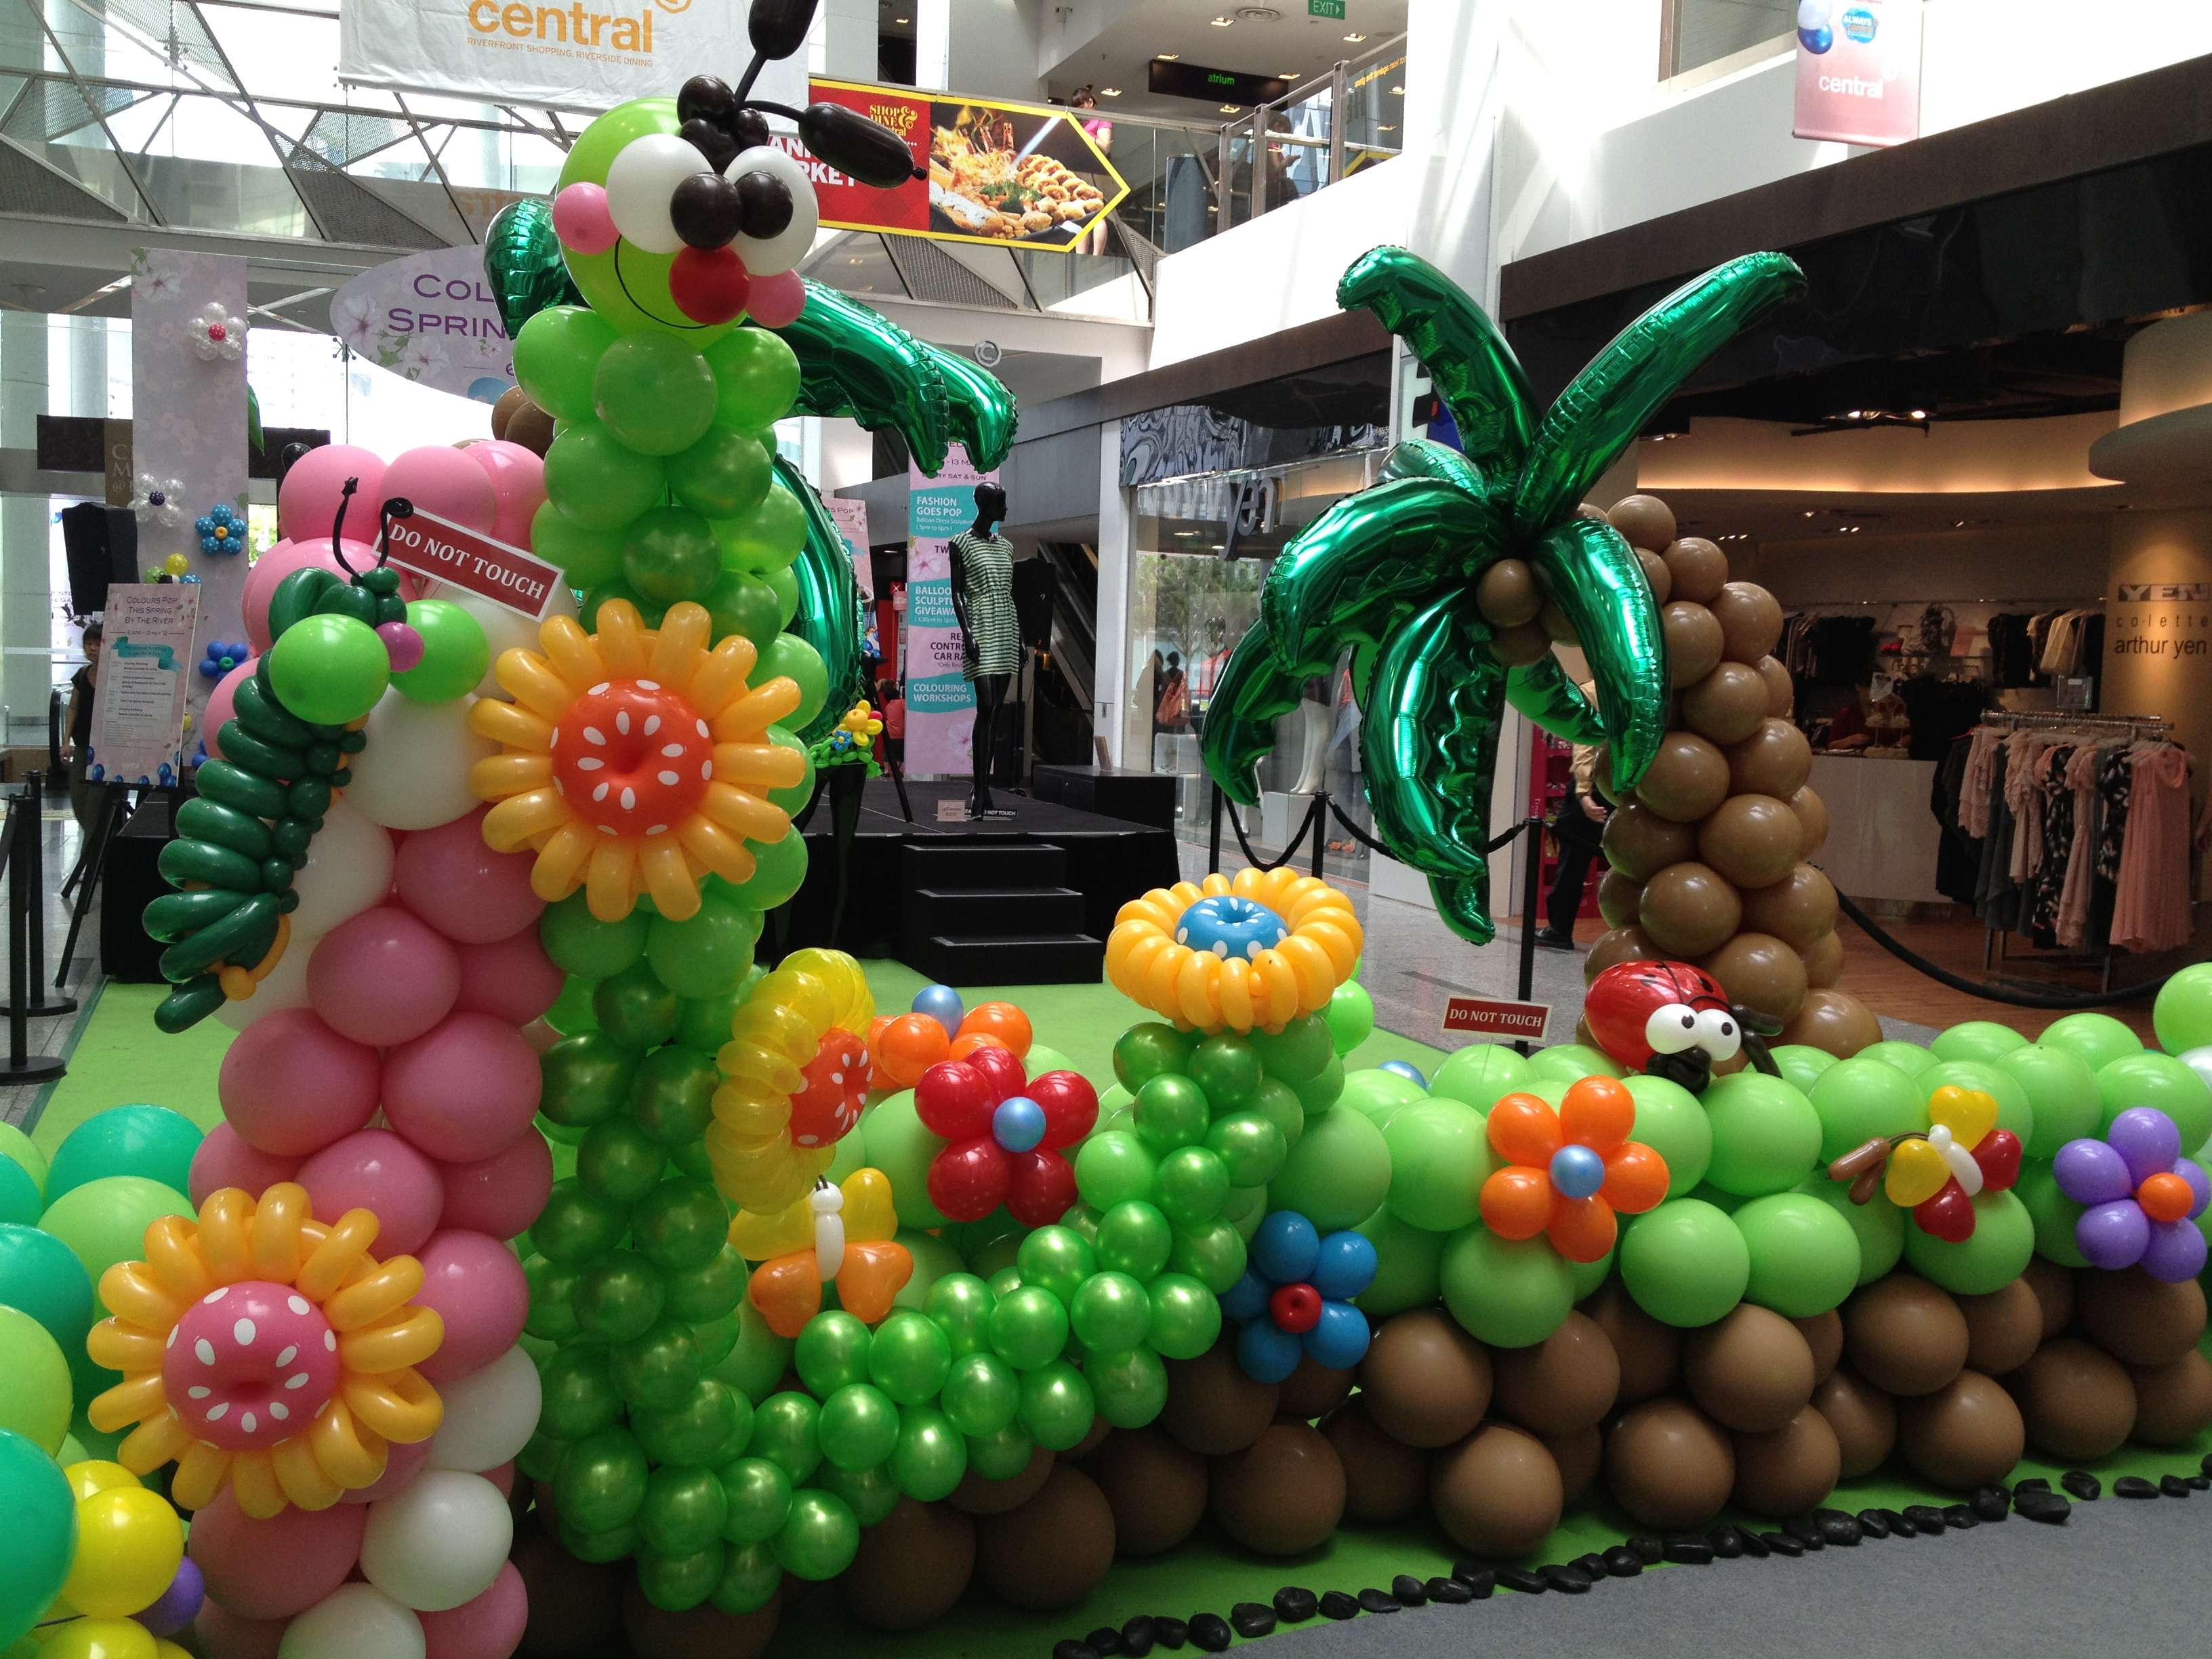 Balloon decorations at shopping centre that balloons for Home decorations with balloons